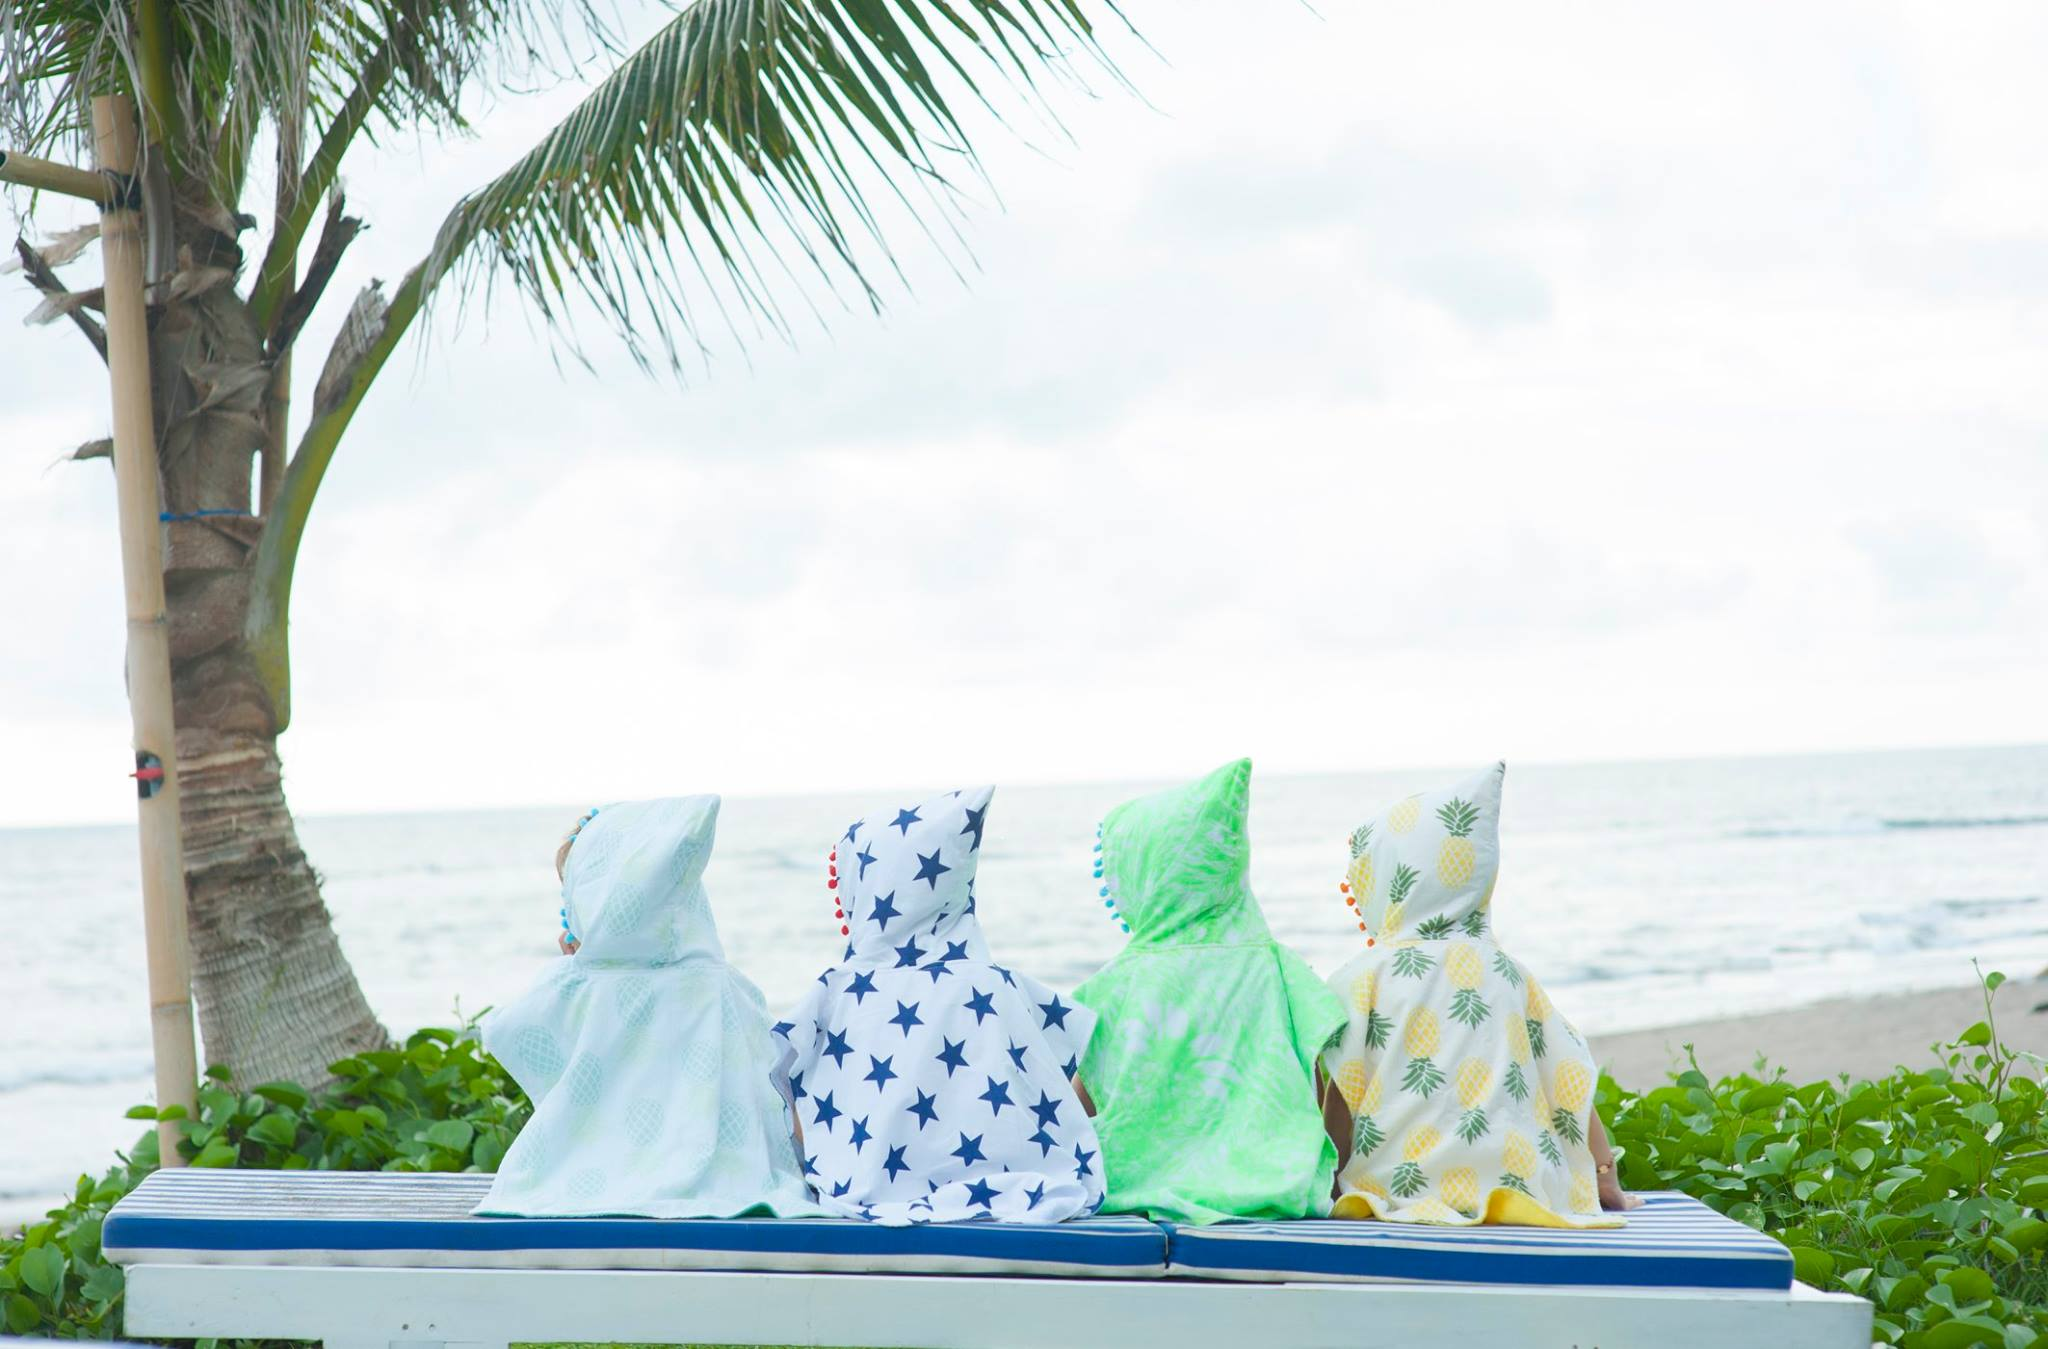 Keep the kids nice and cuddly in BaliTowel's adorable hoodies. With so many styles available, you might want to pick up a few to give as baby shower gifts and more.